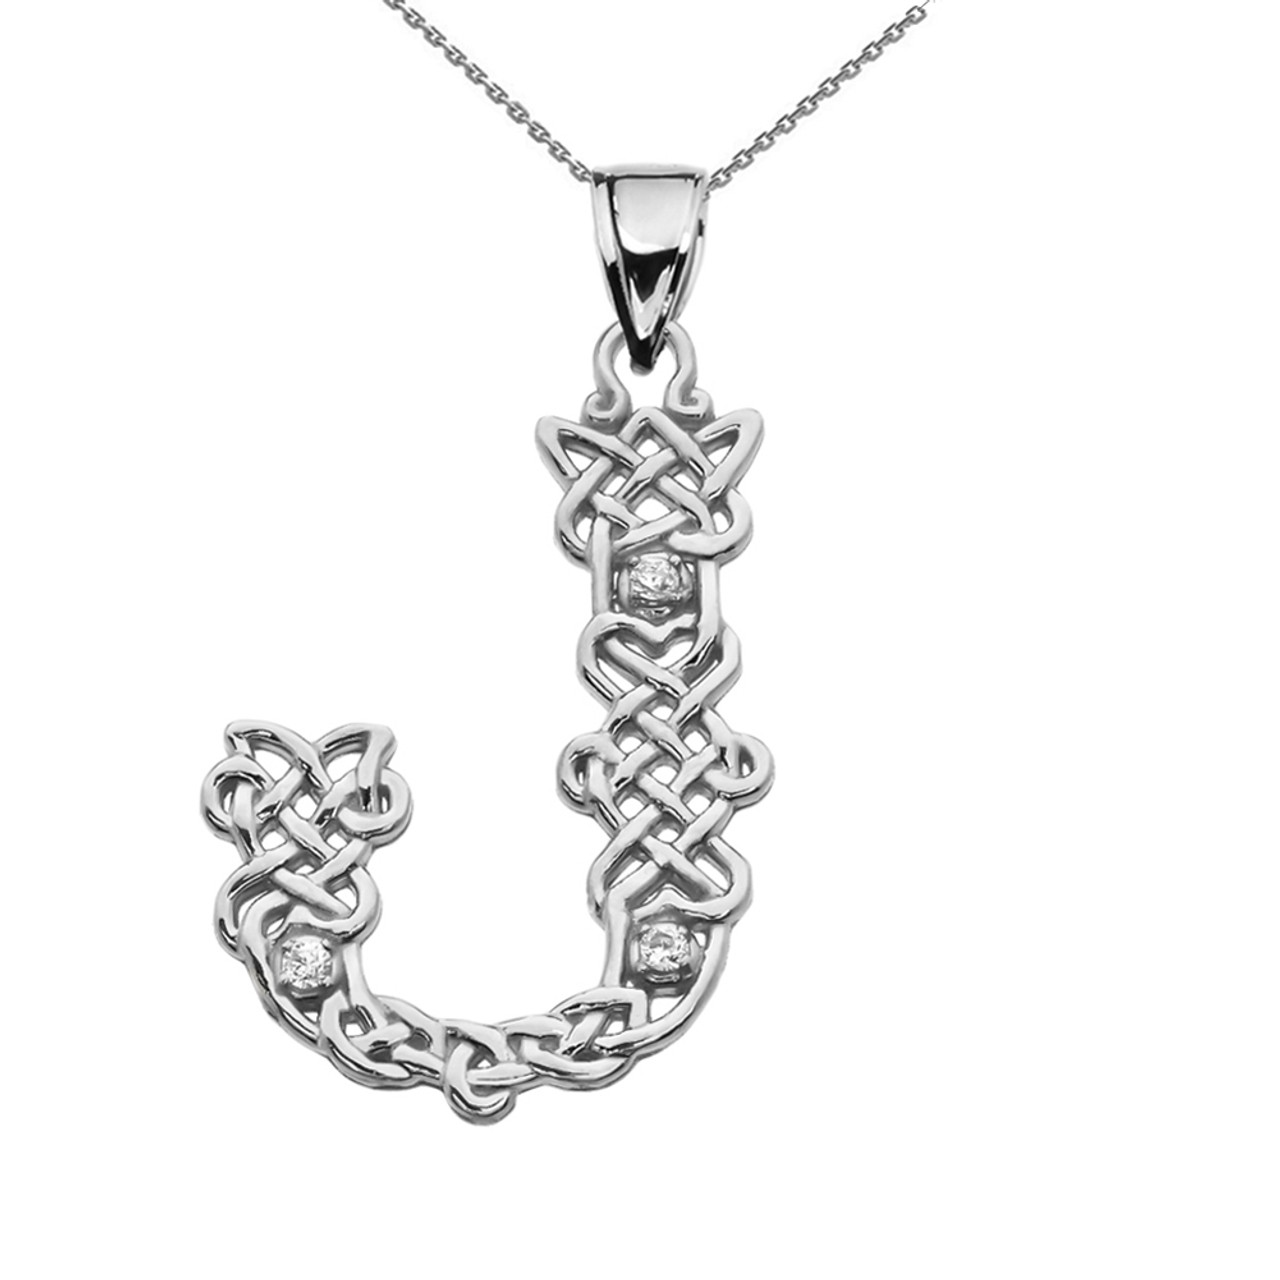 Cz j initial in celtic pattern sterling silver pendant necklace j initial in celtic knot pattern sterling silver pendant necklace with cz aloadofball Images